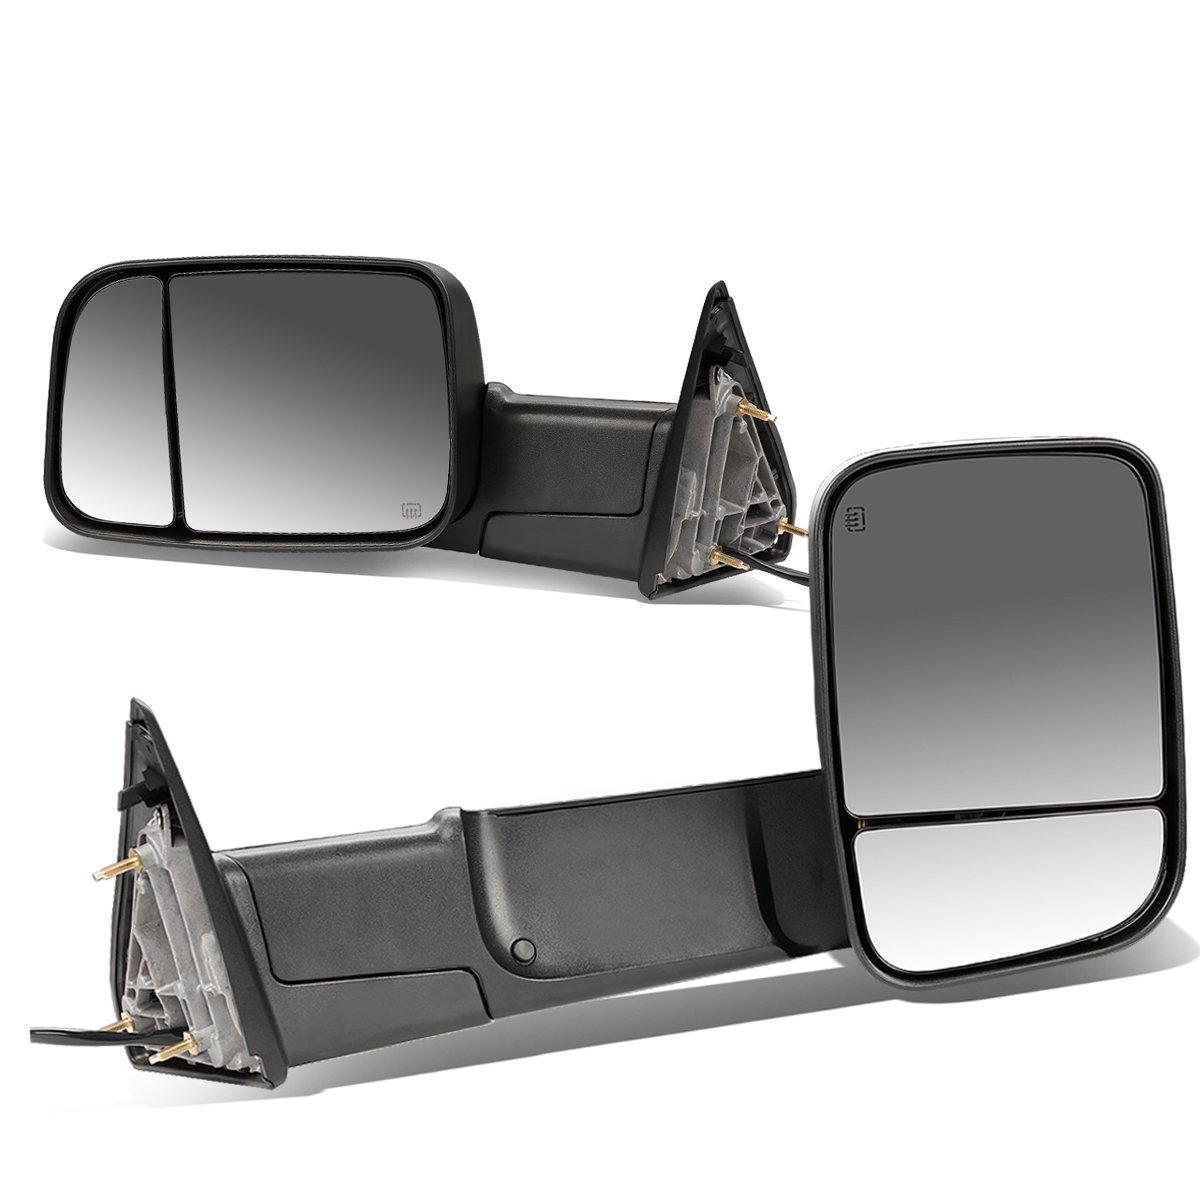 DNA MOTORING TWM-013-T111-BK Pair of Towing Side Mirrors, Driver and Passenger Sides by DNA MOTORING